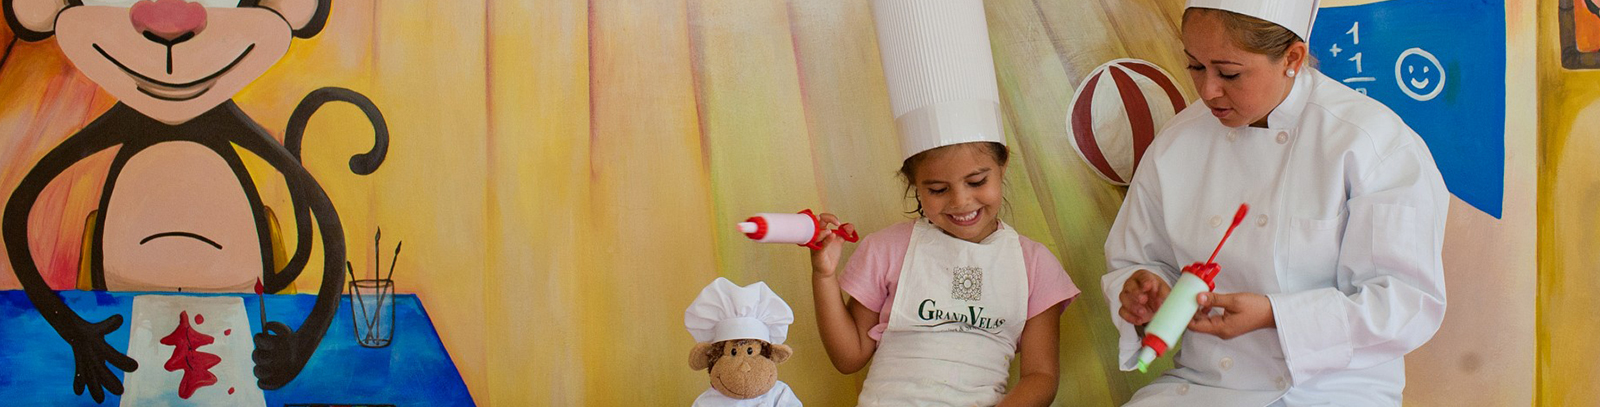 Kids' Club en Grand Velas Riviera Nayarit